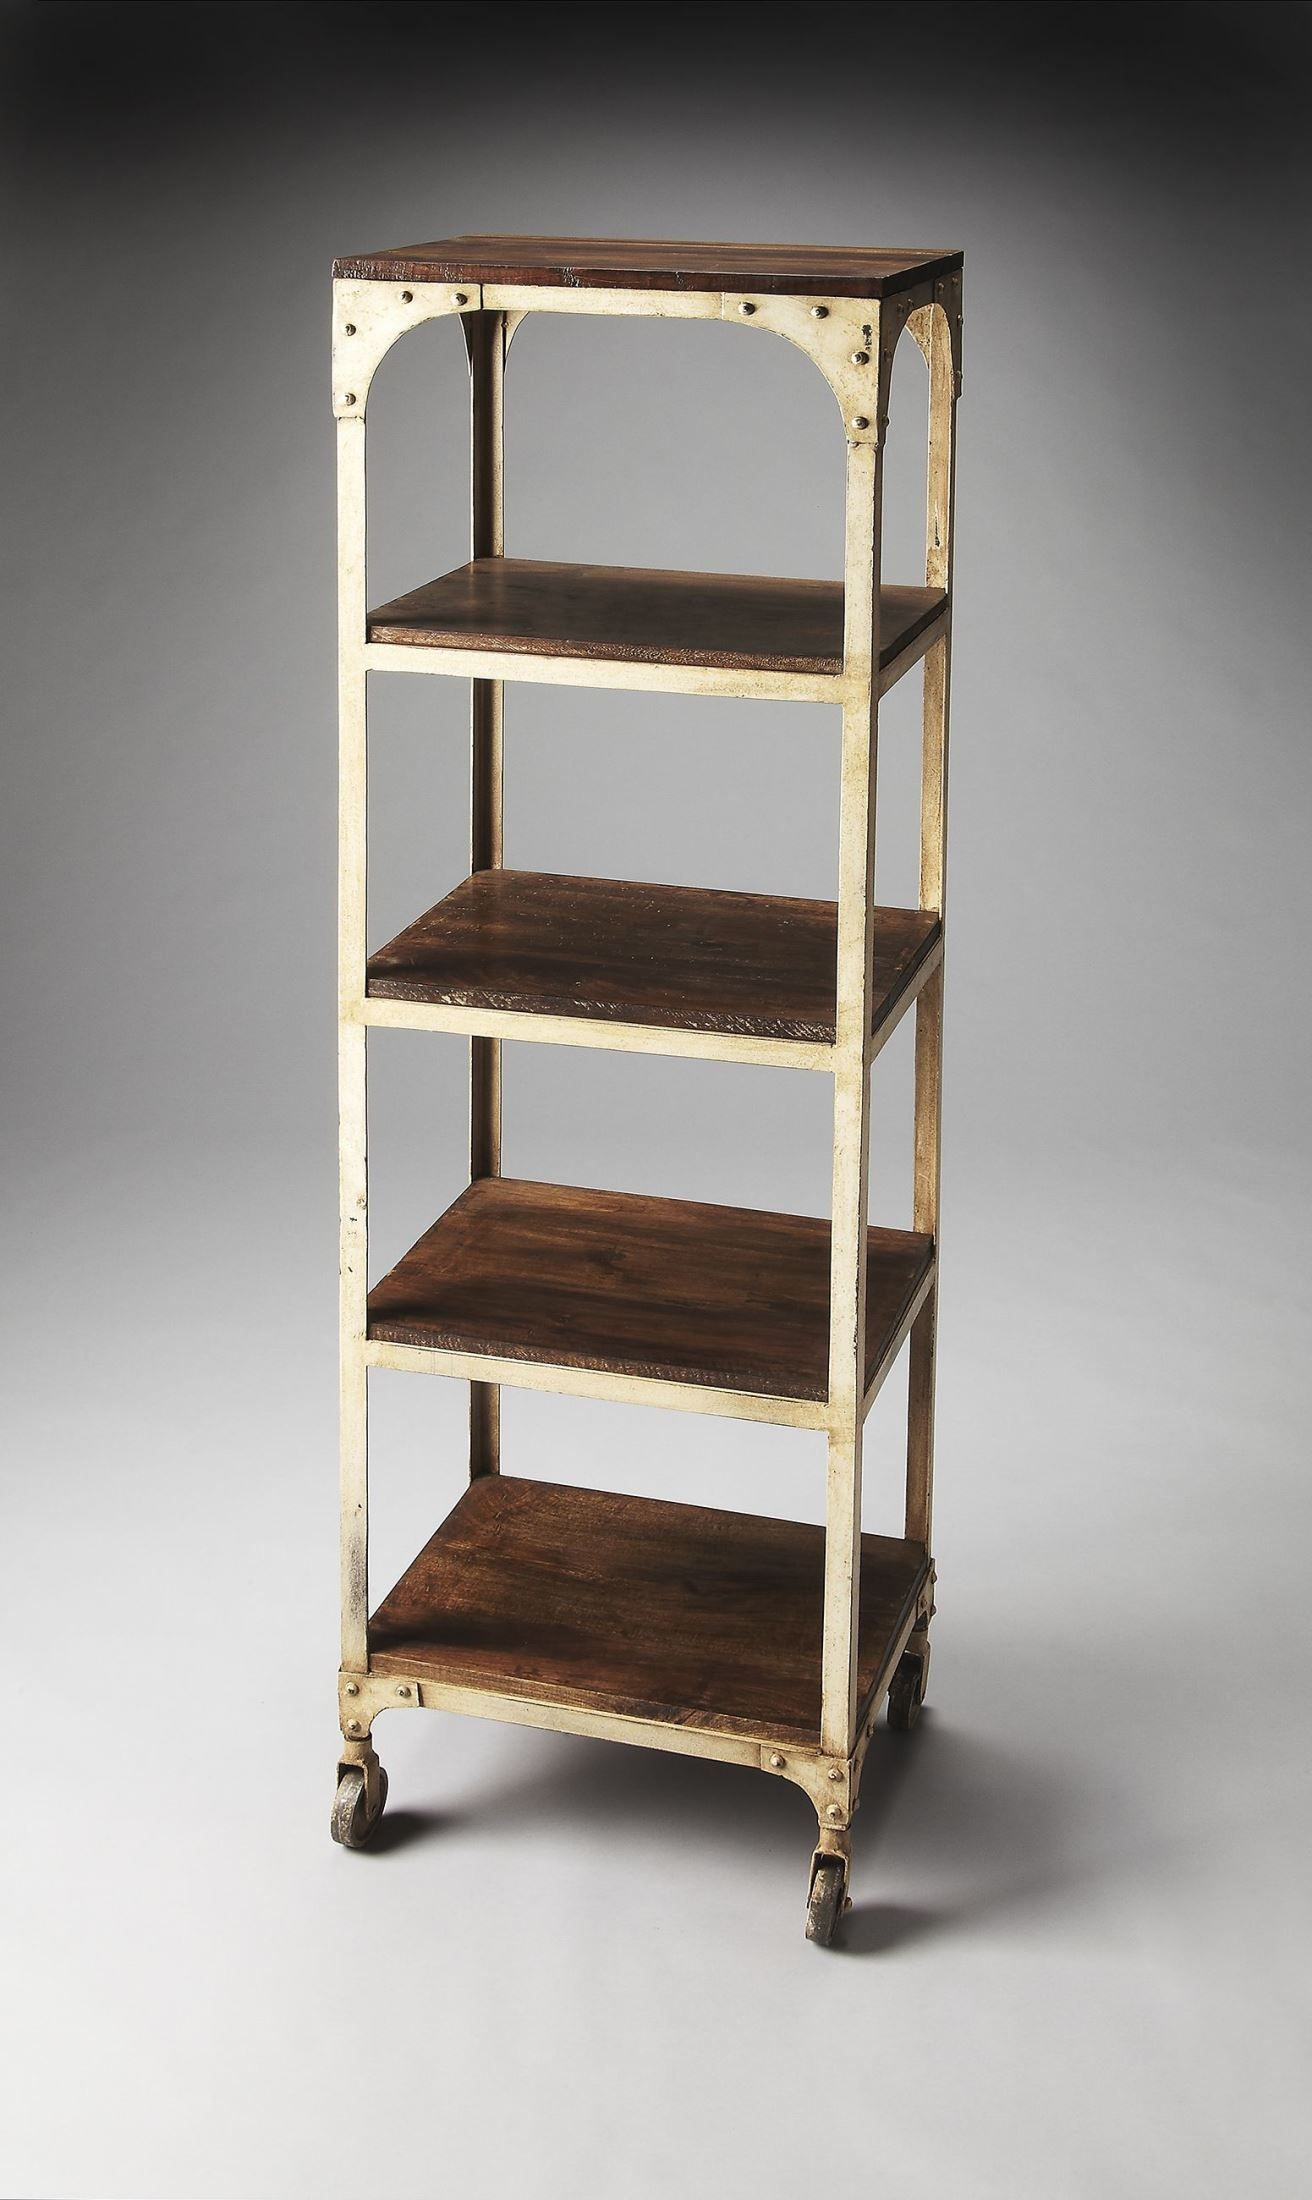 Blaine industrial chic artifacts etagere from butler for Etagere campagne chic